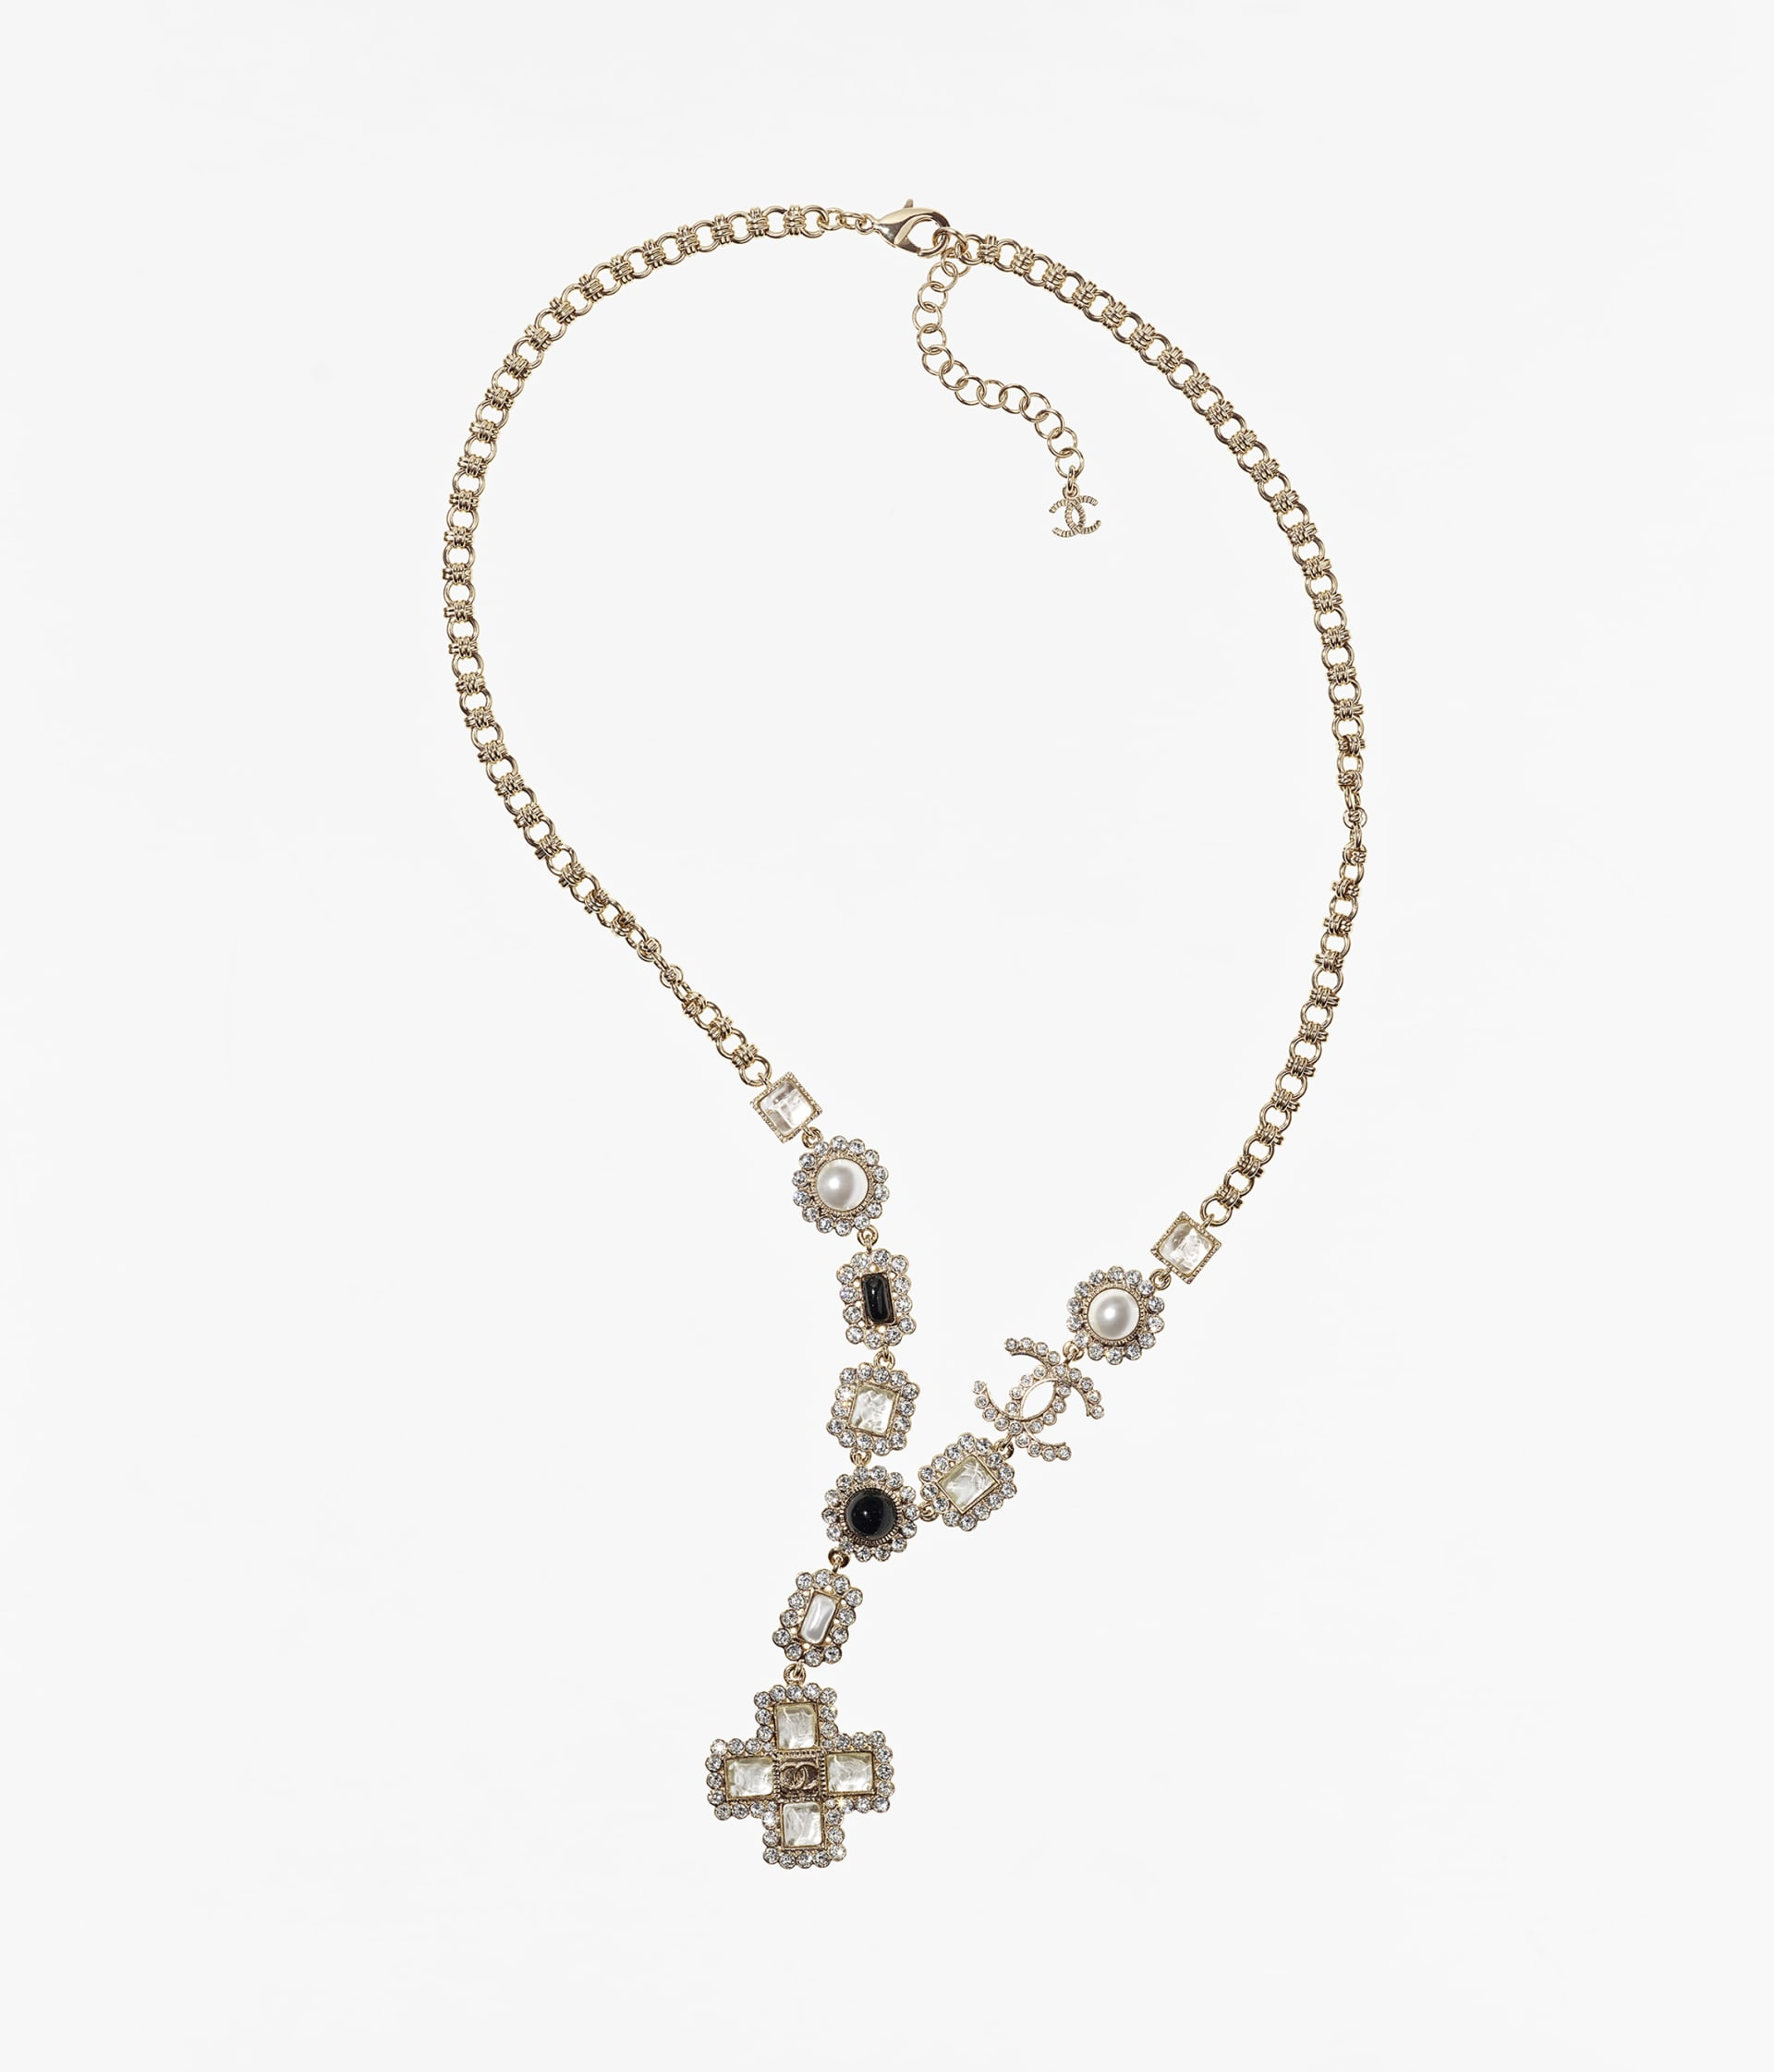 image 1 - Long Necklace - Metal, Glass Pearls, Glass & Strass - Gold, Pearly White, Black & Crystal